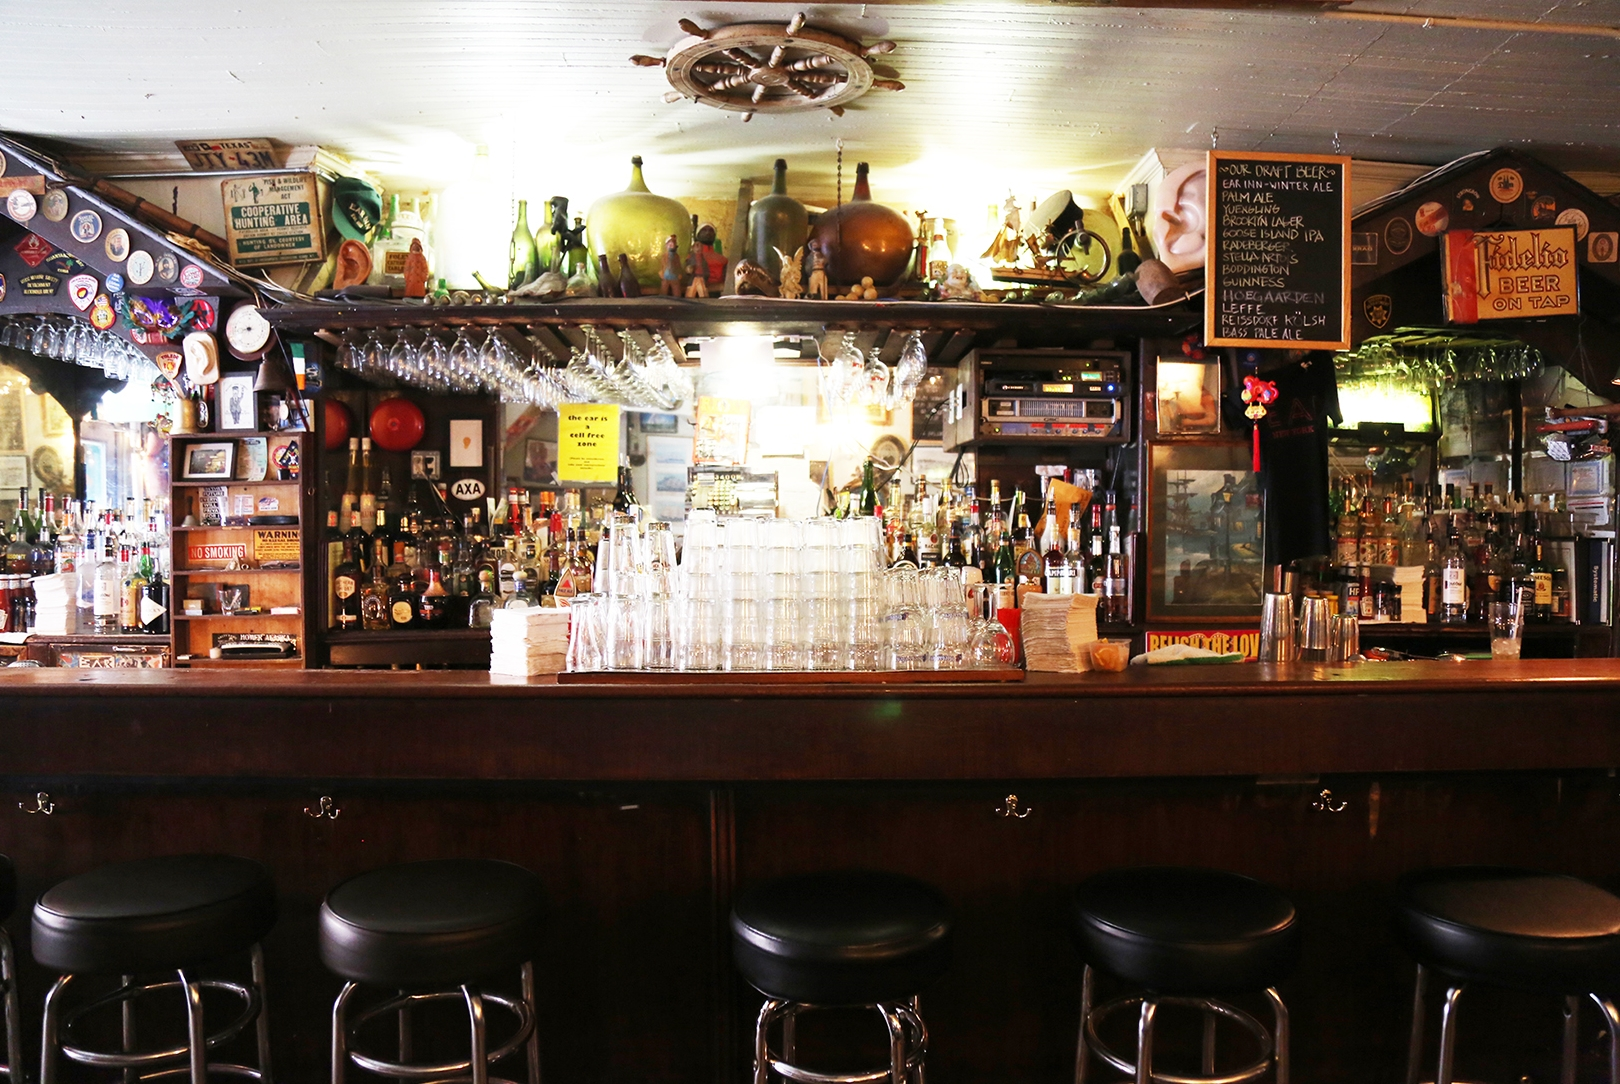 The bar at the Ear Inn.